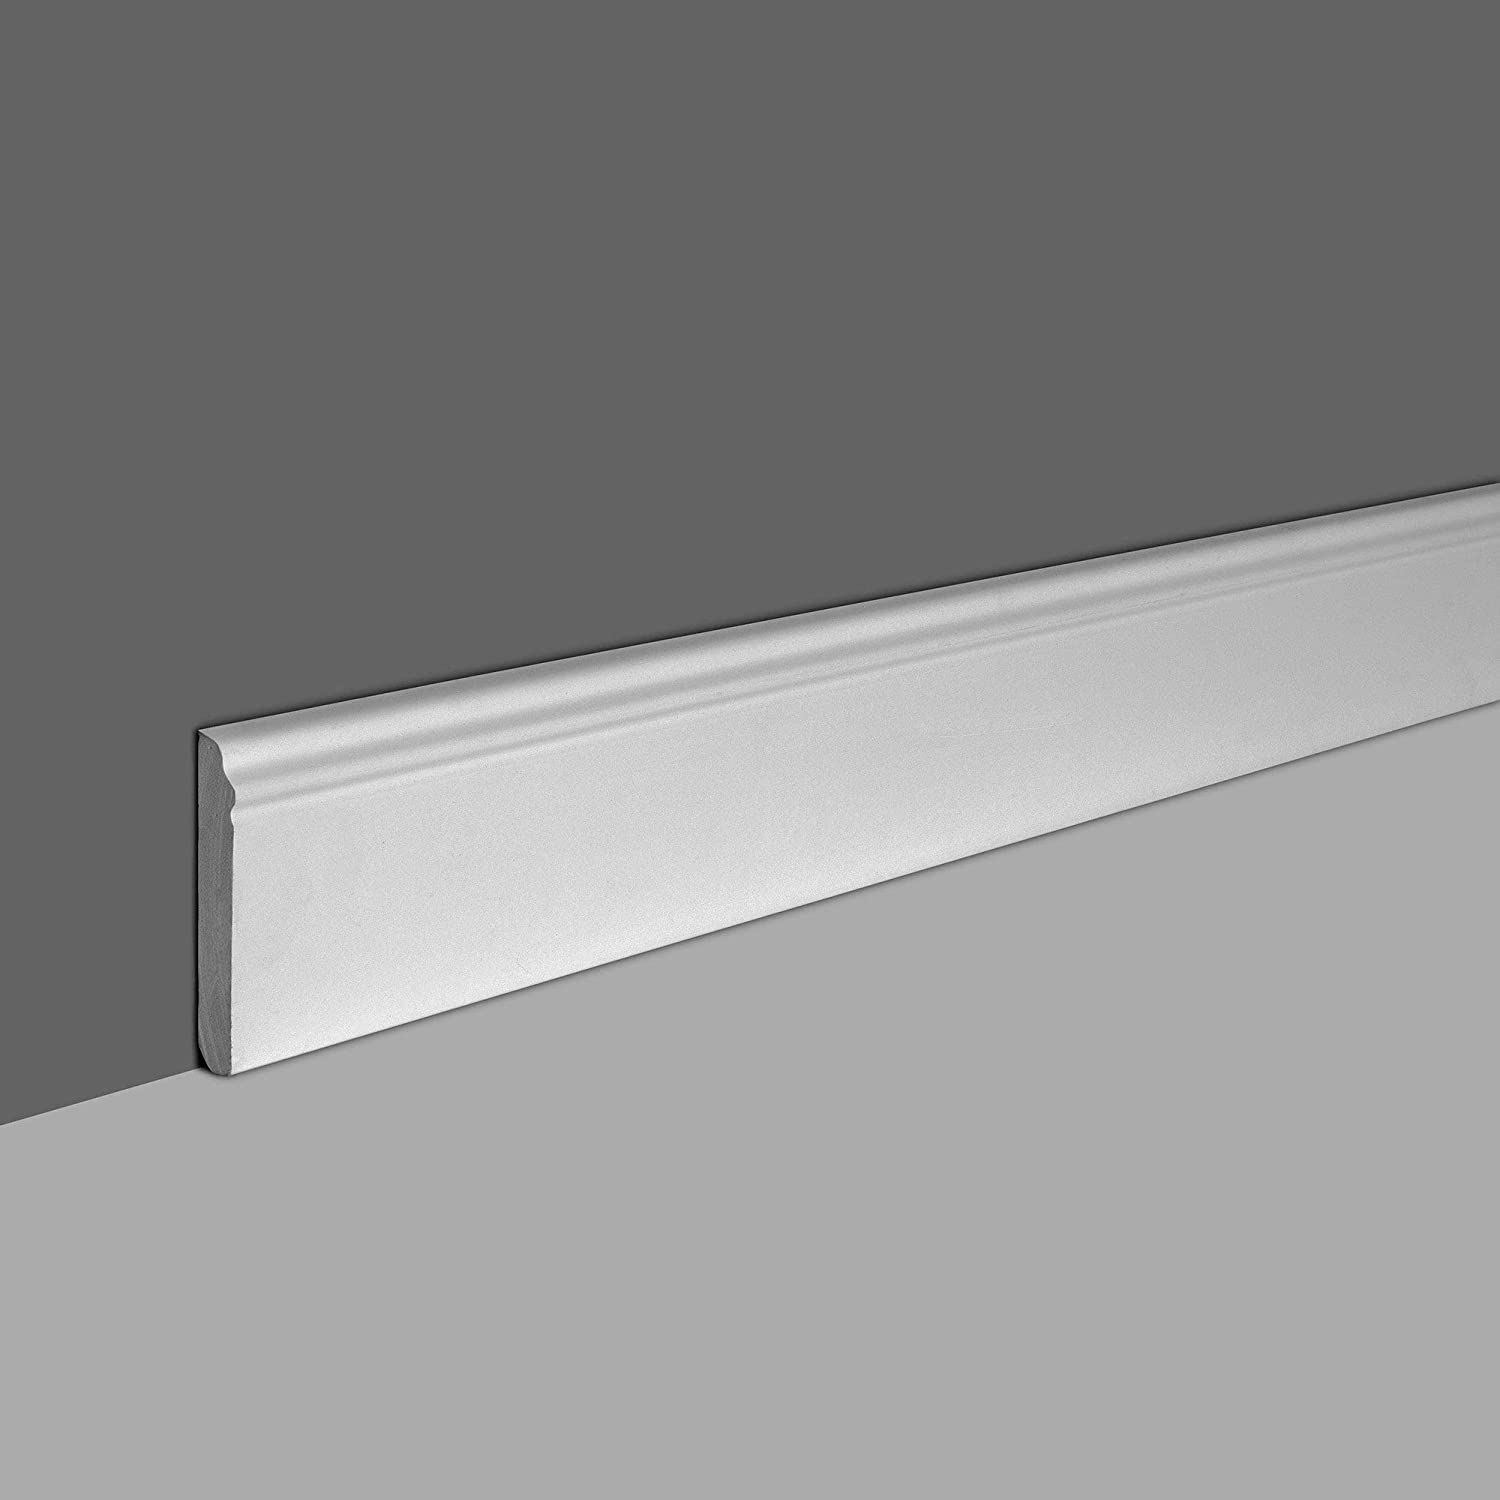 Designers Edge Millwork 4 High x 1//2Projection Primed White Polyurethane Baseboard Moulding 94-1//2 Inch Length Pack of 2